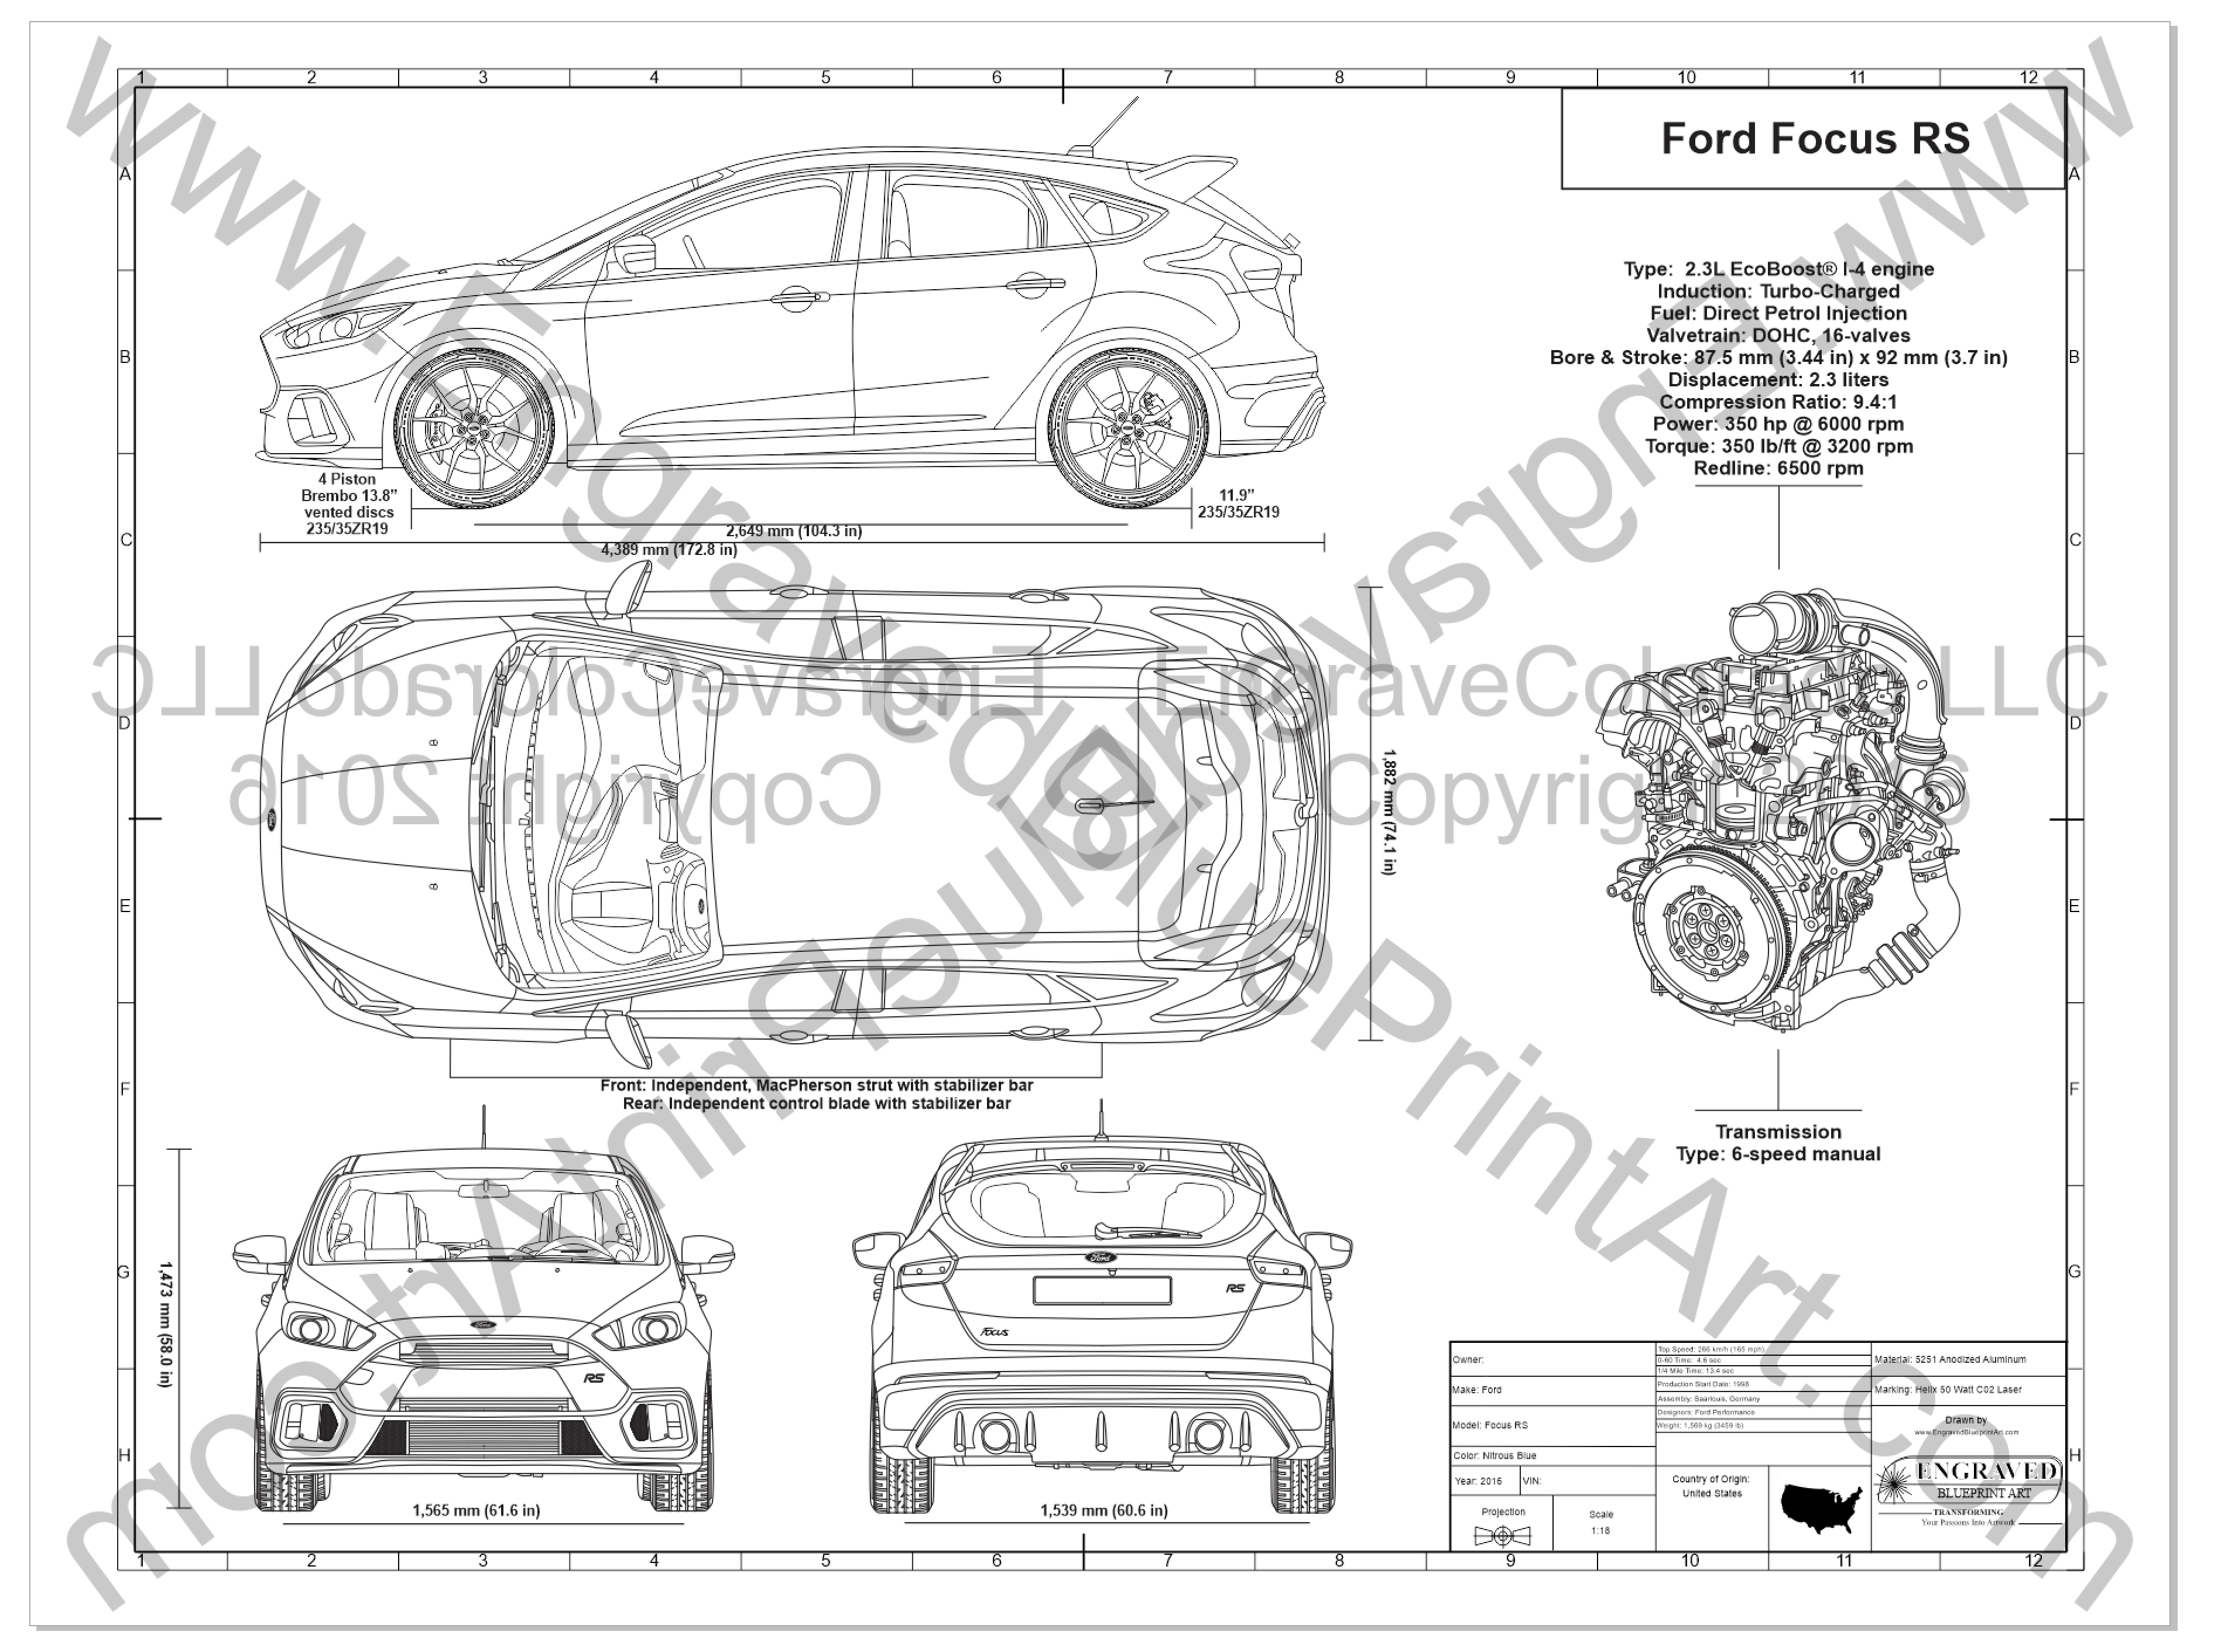 Group buy is now active engraved focus rs blueprint name icmfullxfull13193612549qfhyb3v9s0www8sswgg views 1602 size 115 mb malvernweather Choice Image